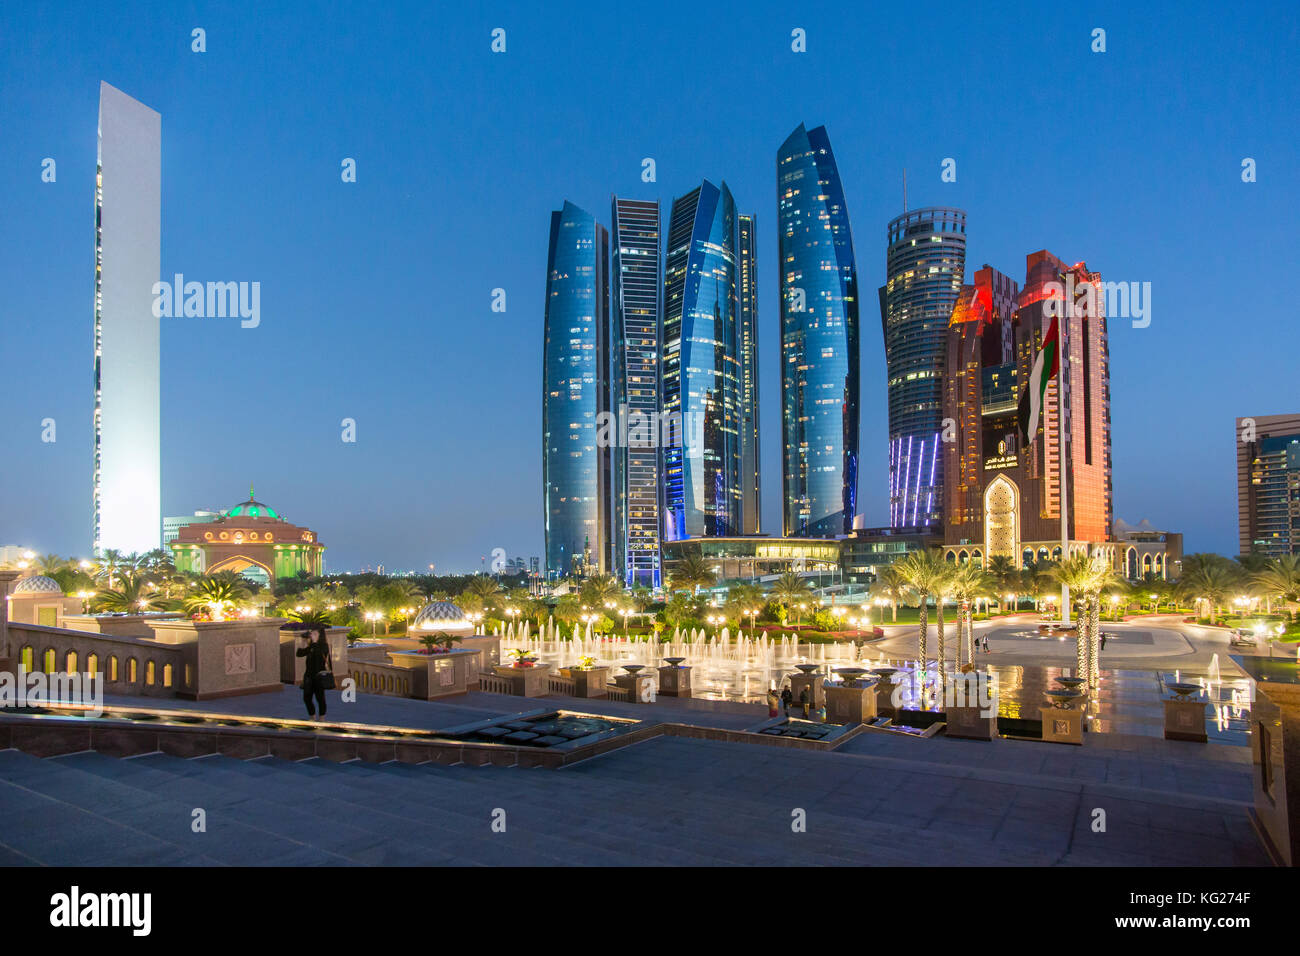 Etihad Towers viewed over the fountains of the Emirates Palace Hotel, Abu Dhabi, United Arab Emirates, Middle East Stock Photo